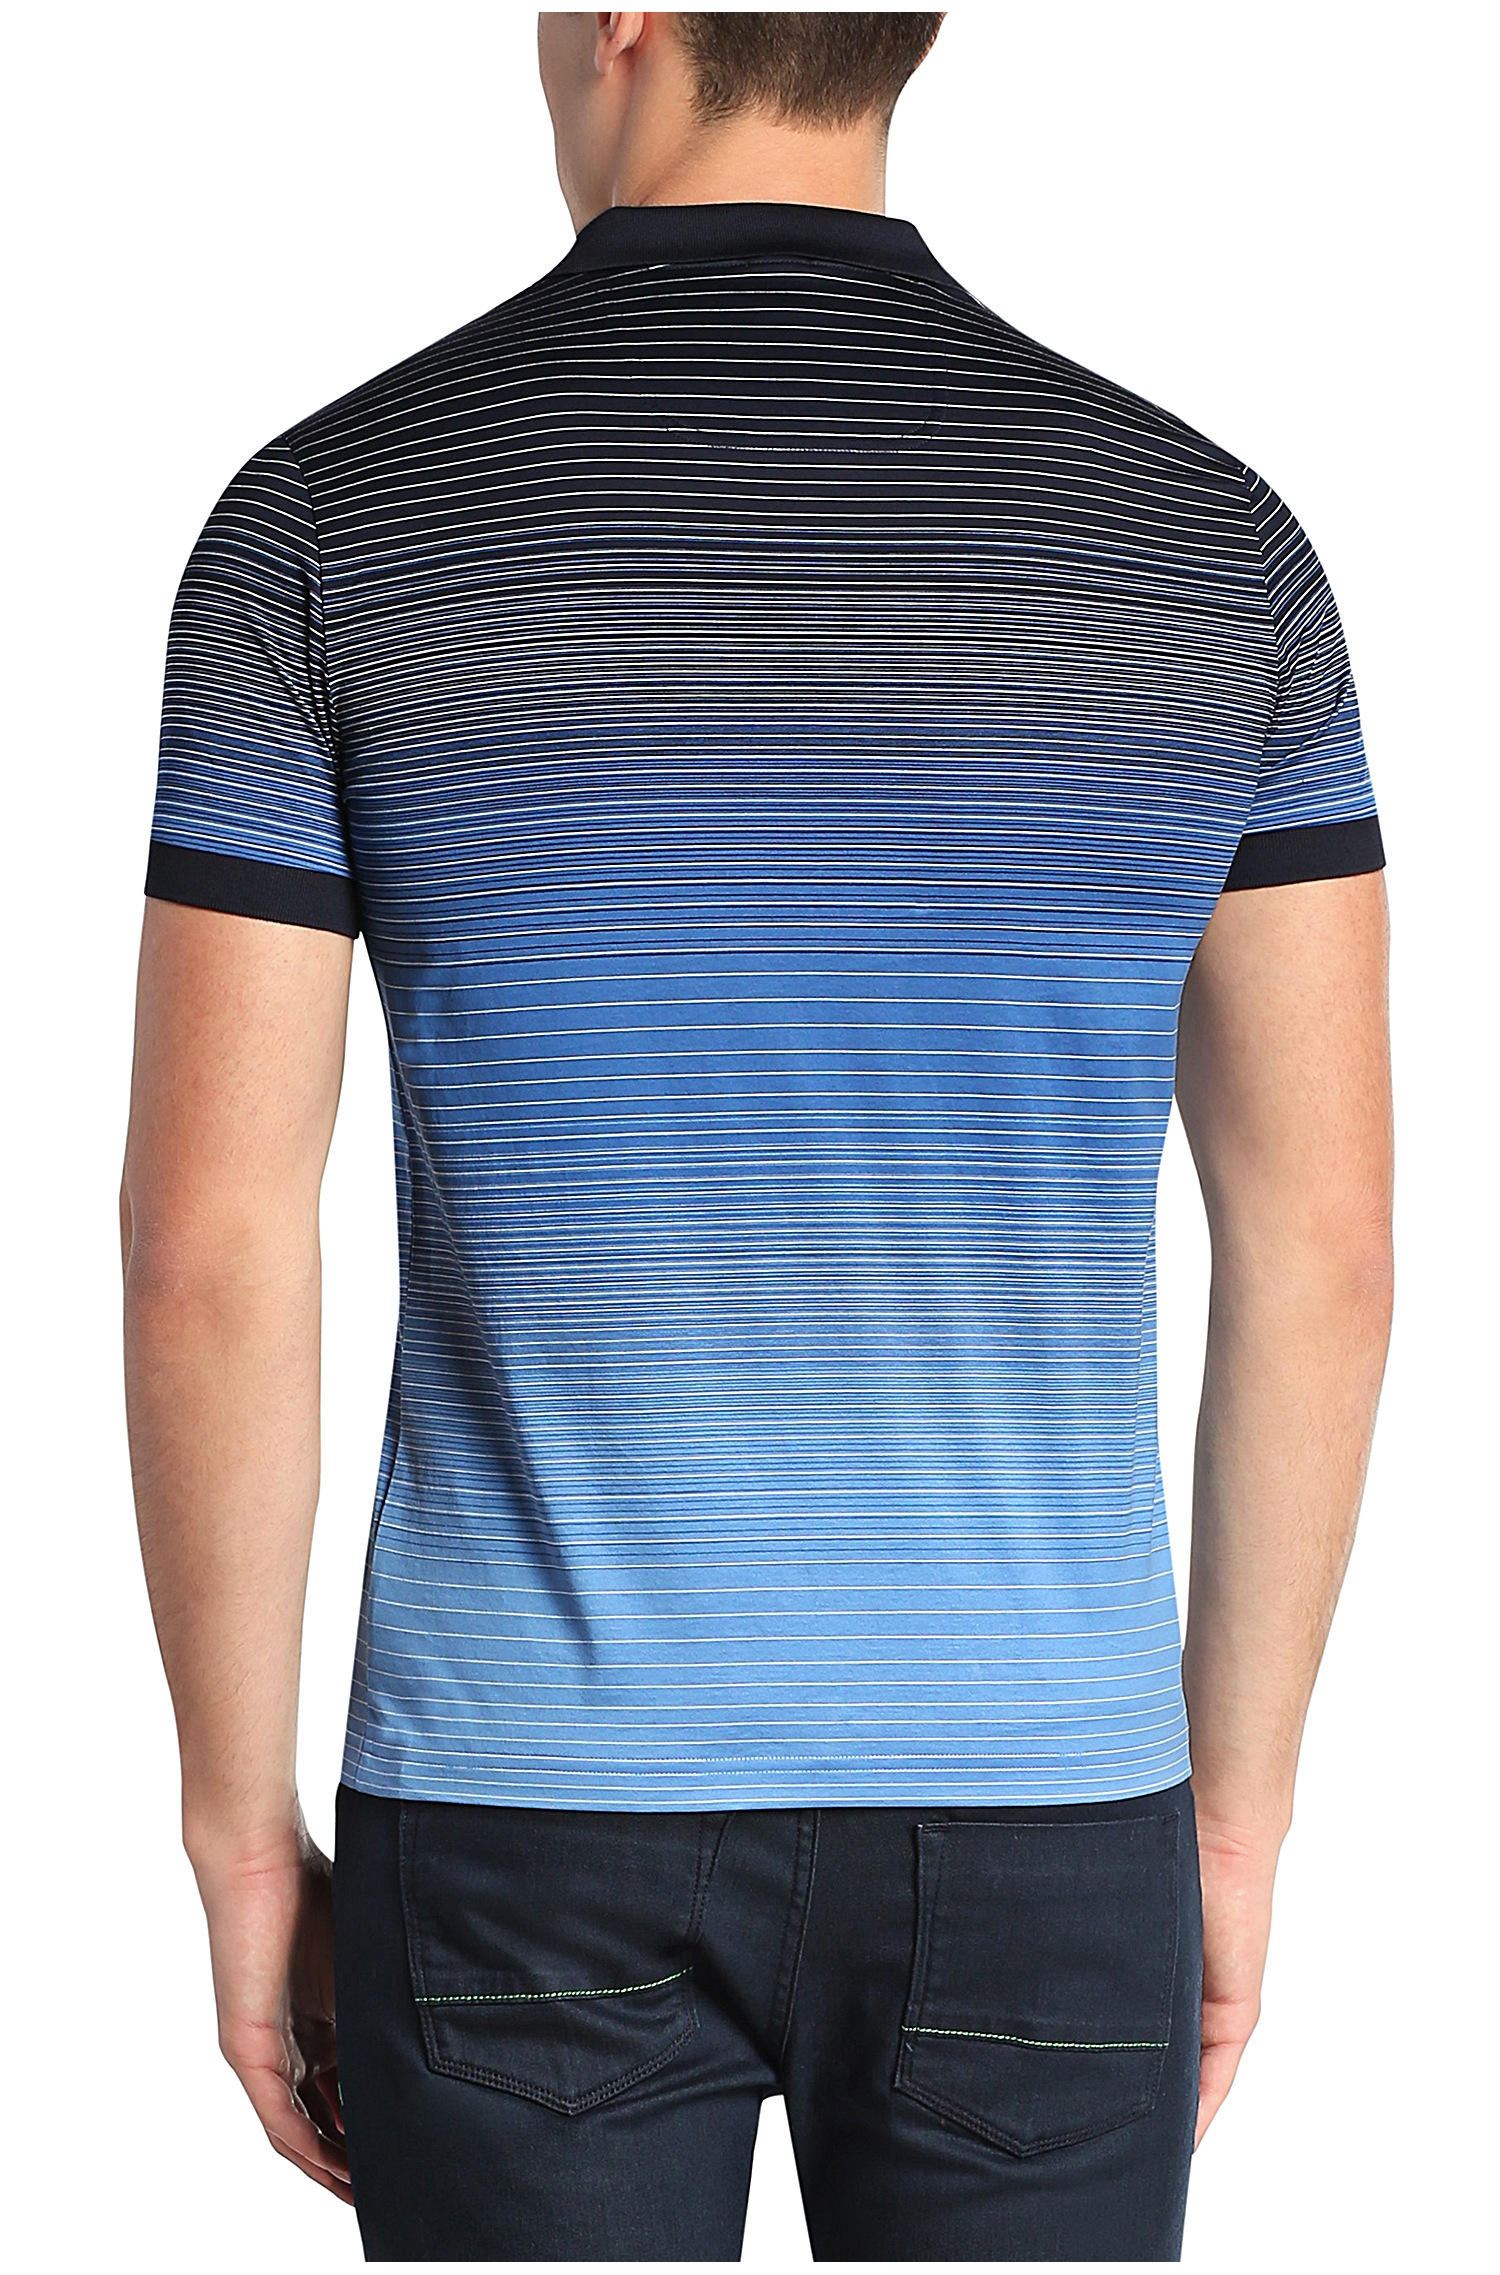 Lyst - Boss Green Regular-fit Cotton Polo Shirt: 'paddy 3' in Blue for Men